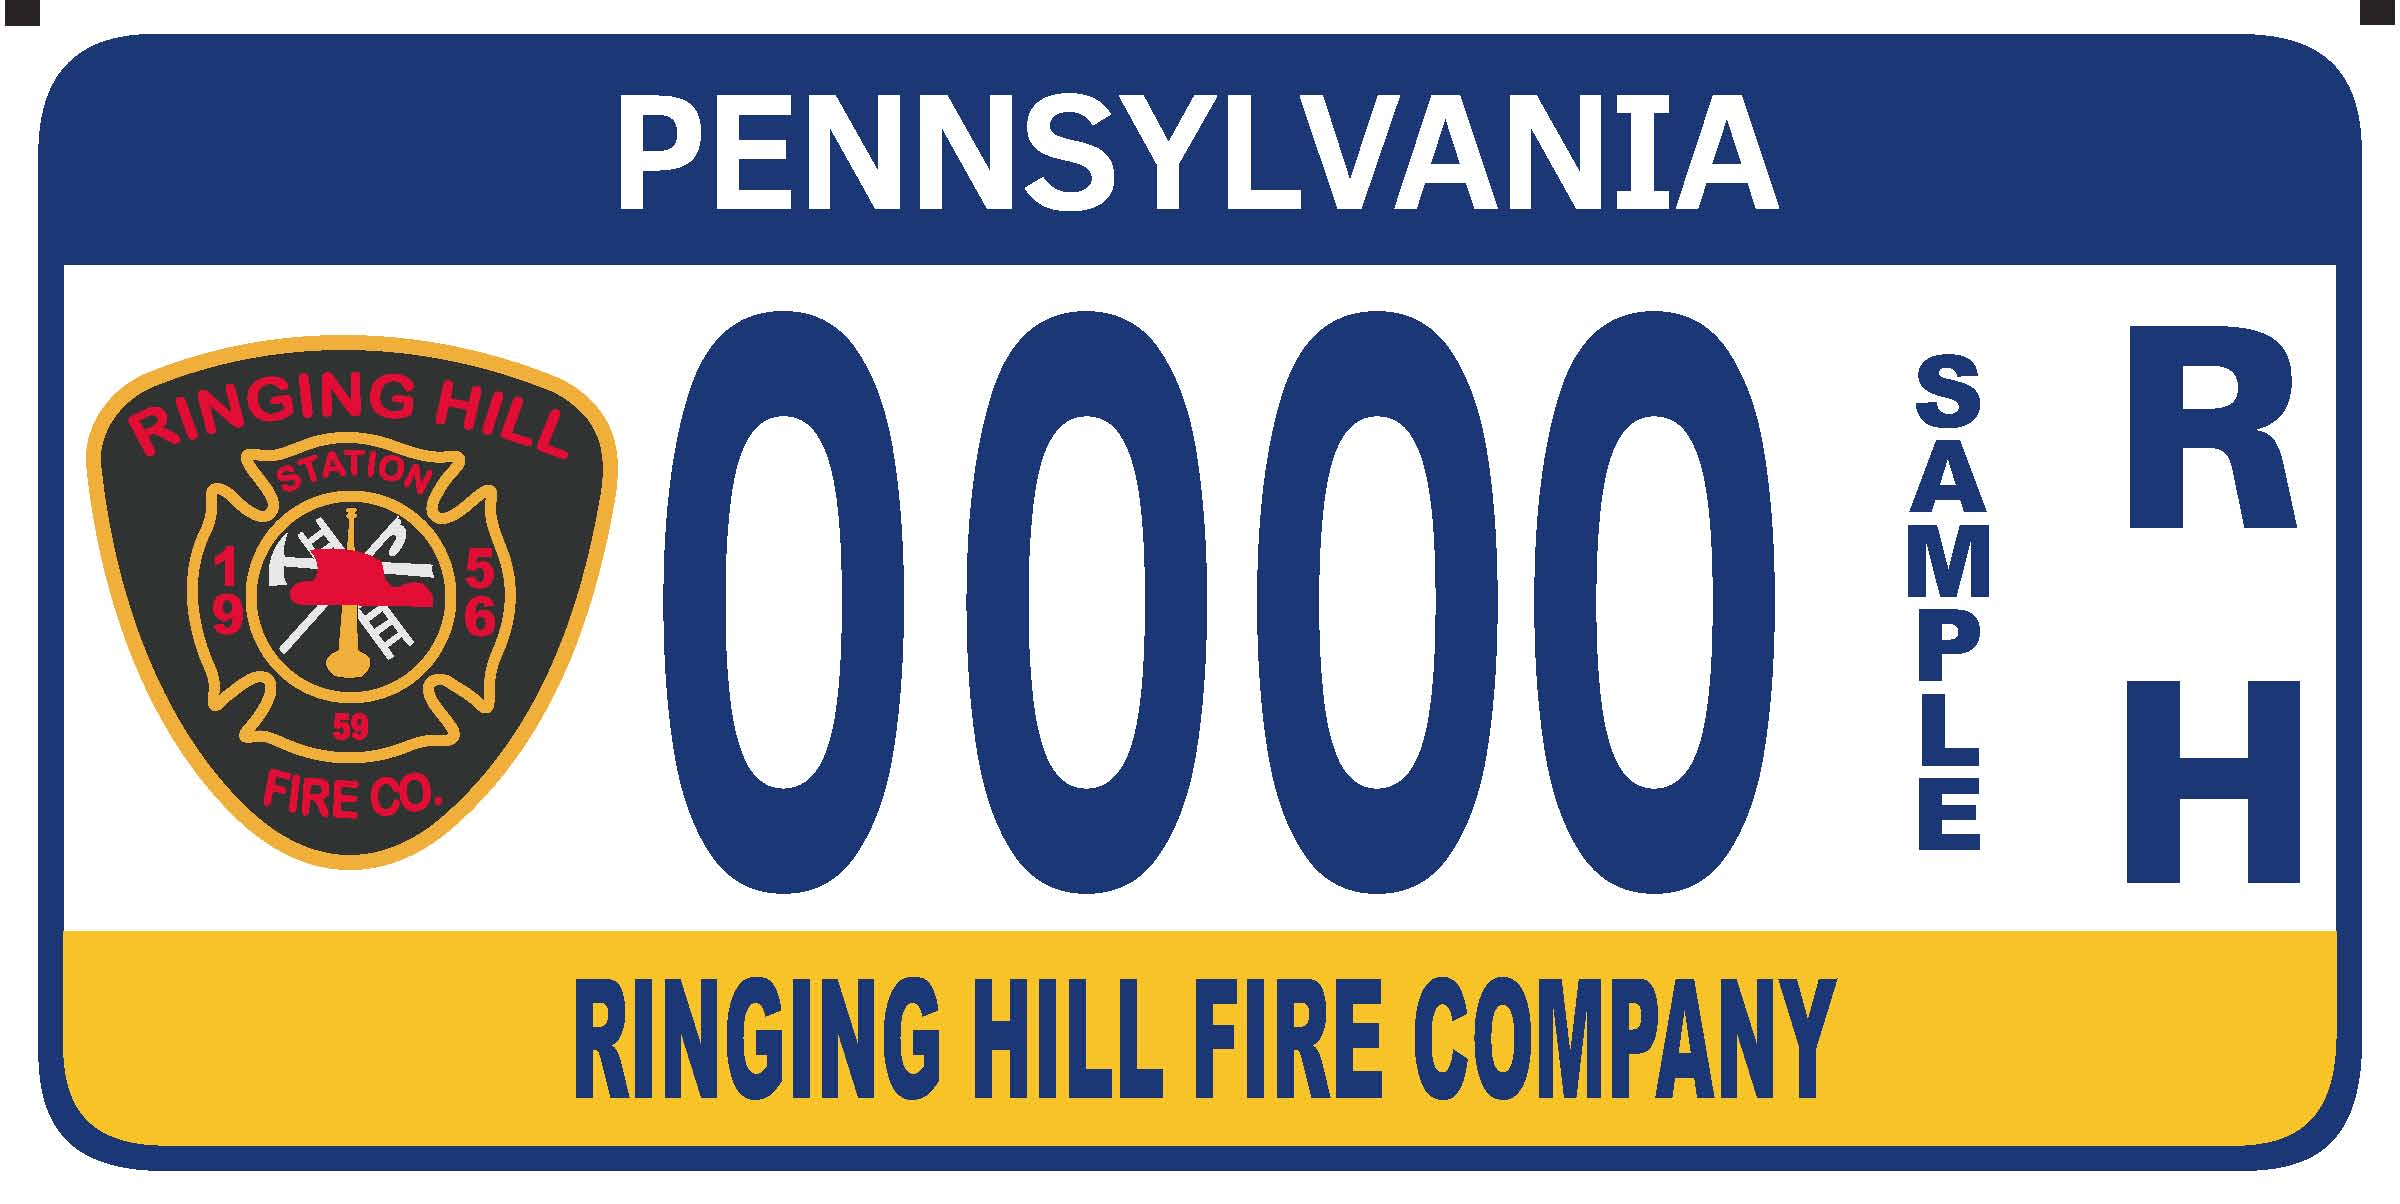 Ringing Hill Fire Company